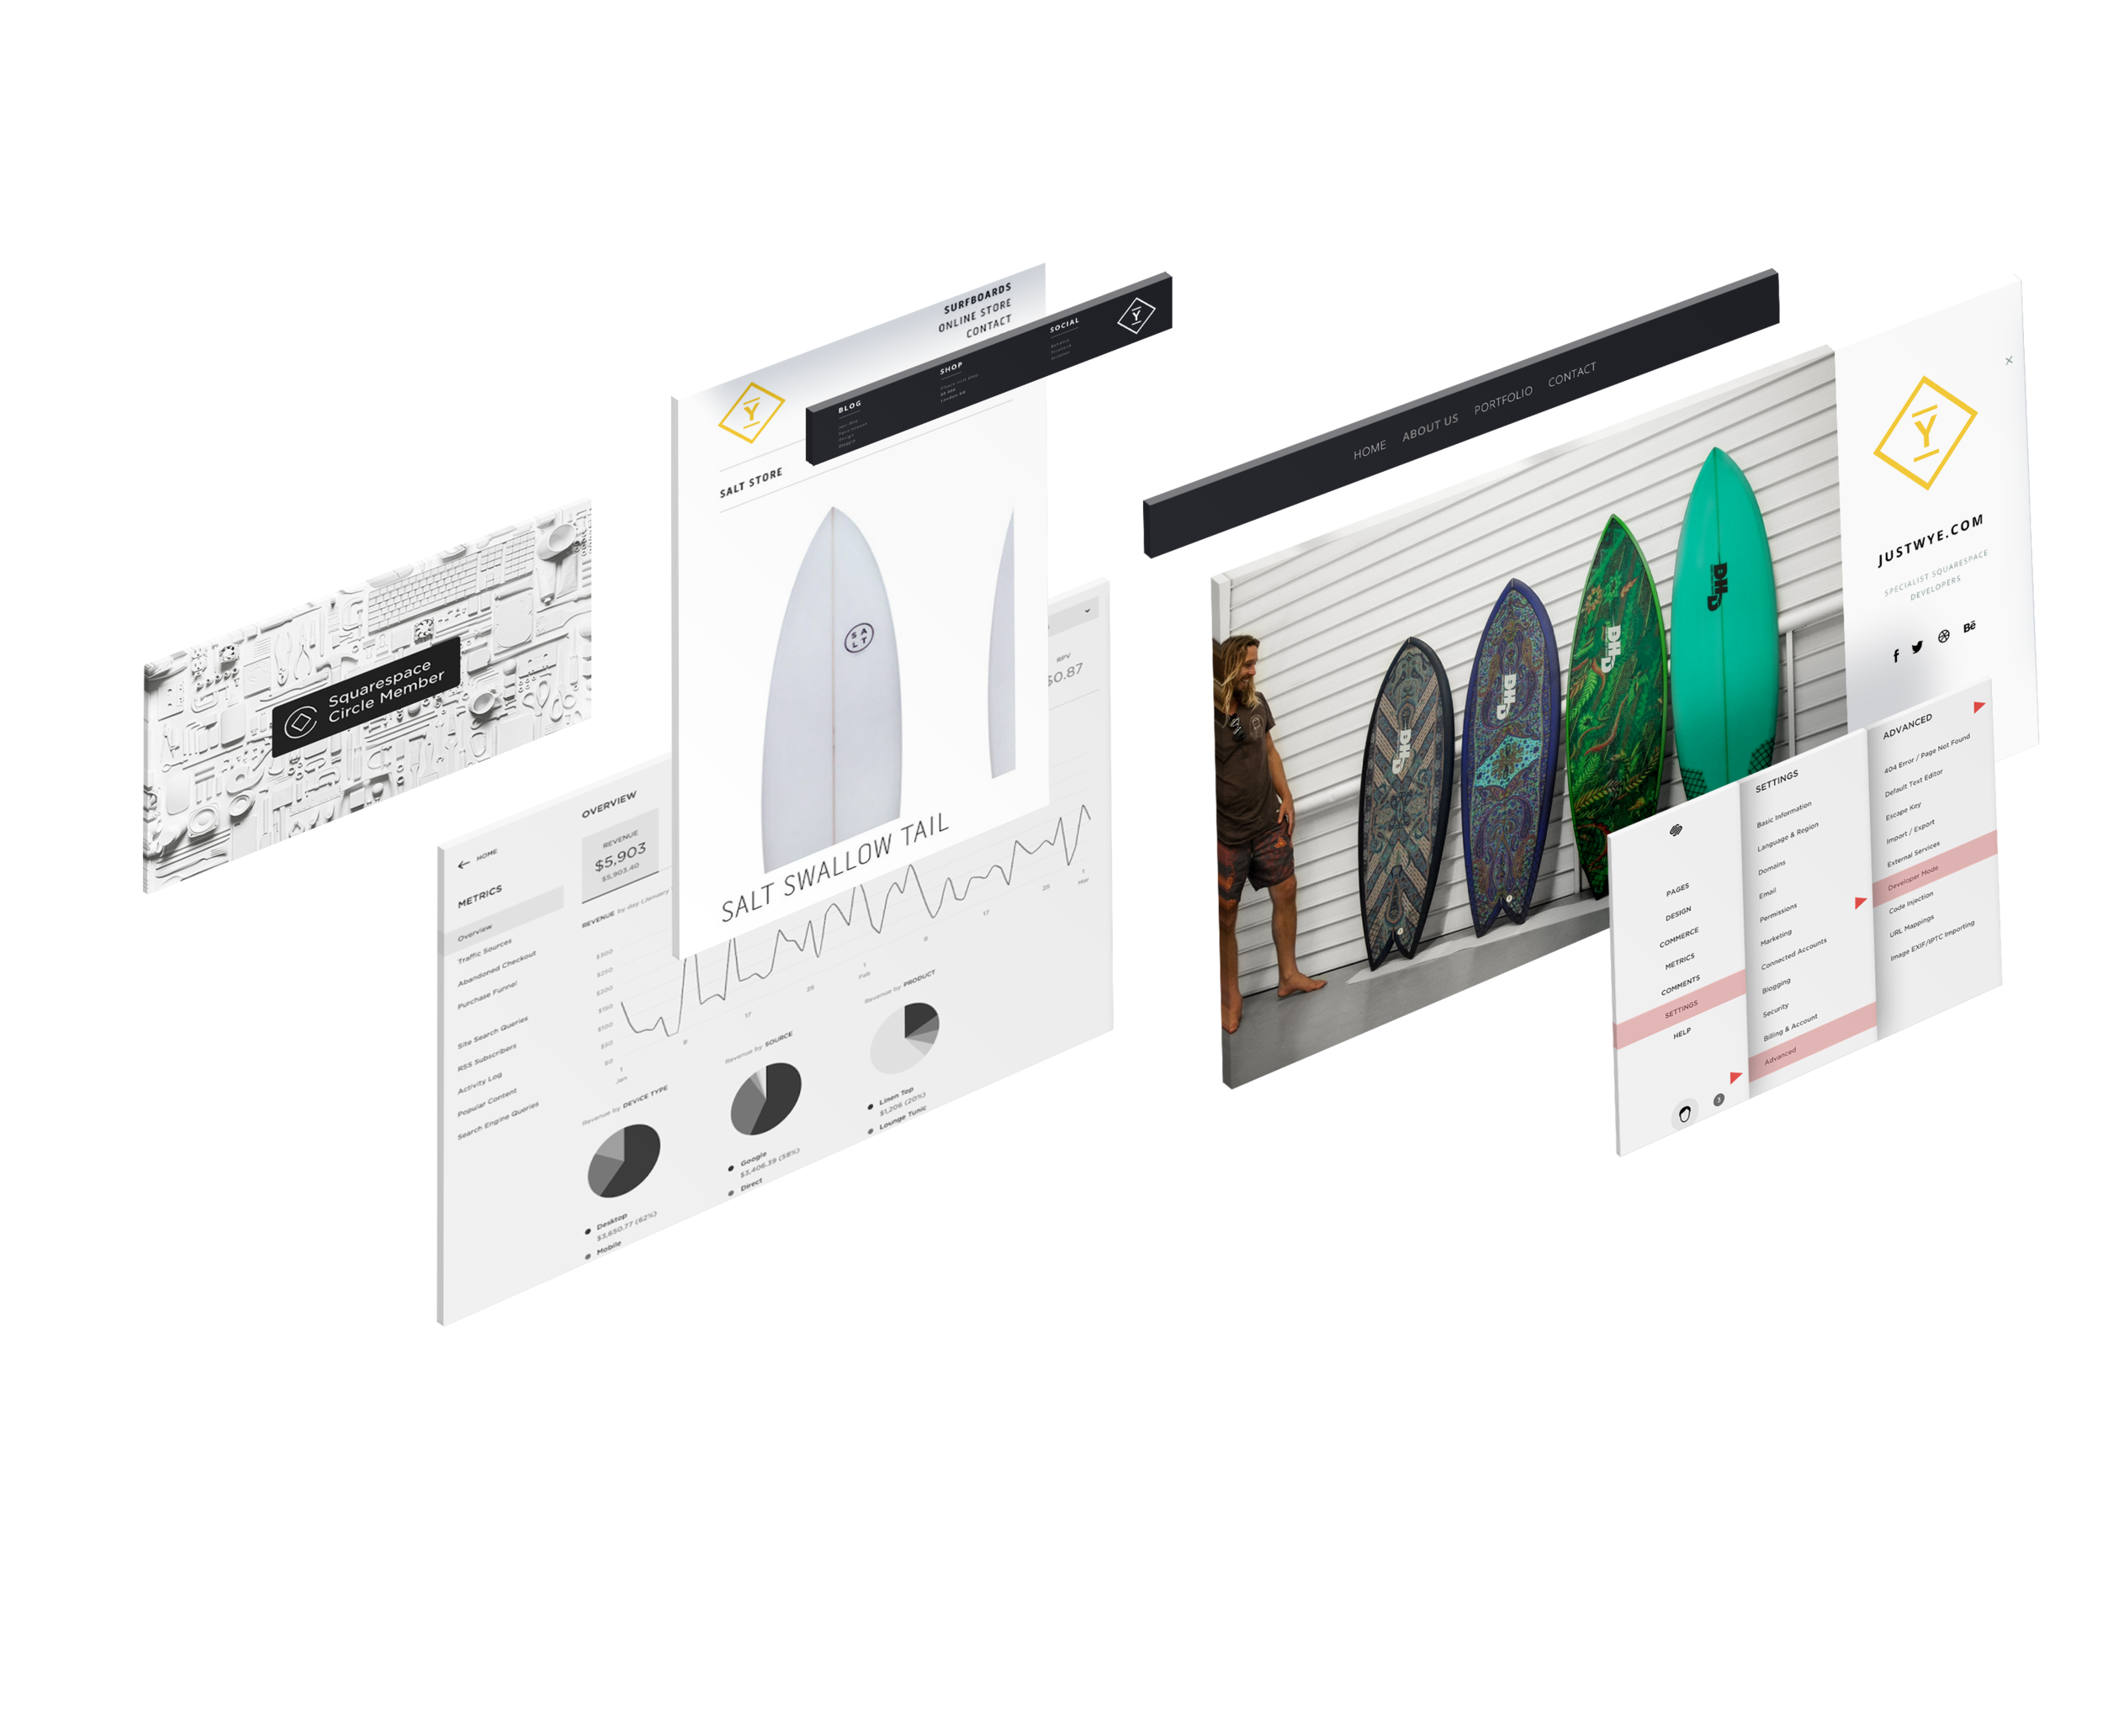 Mockup-squarespace-website-design-stage-example.png